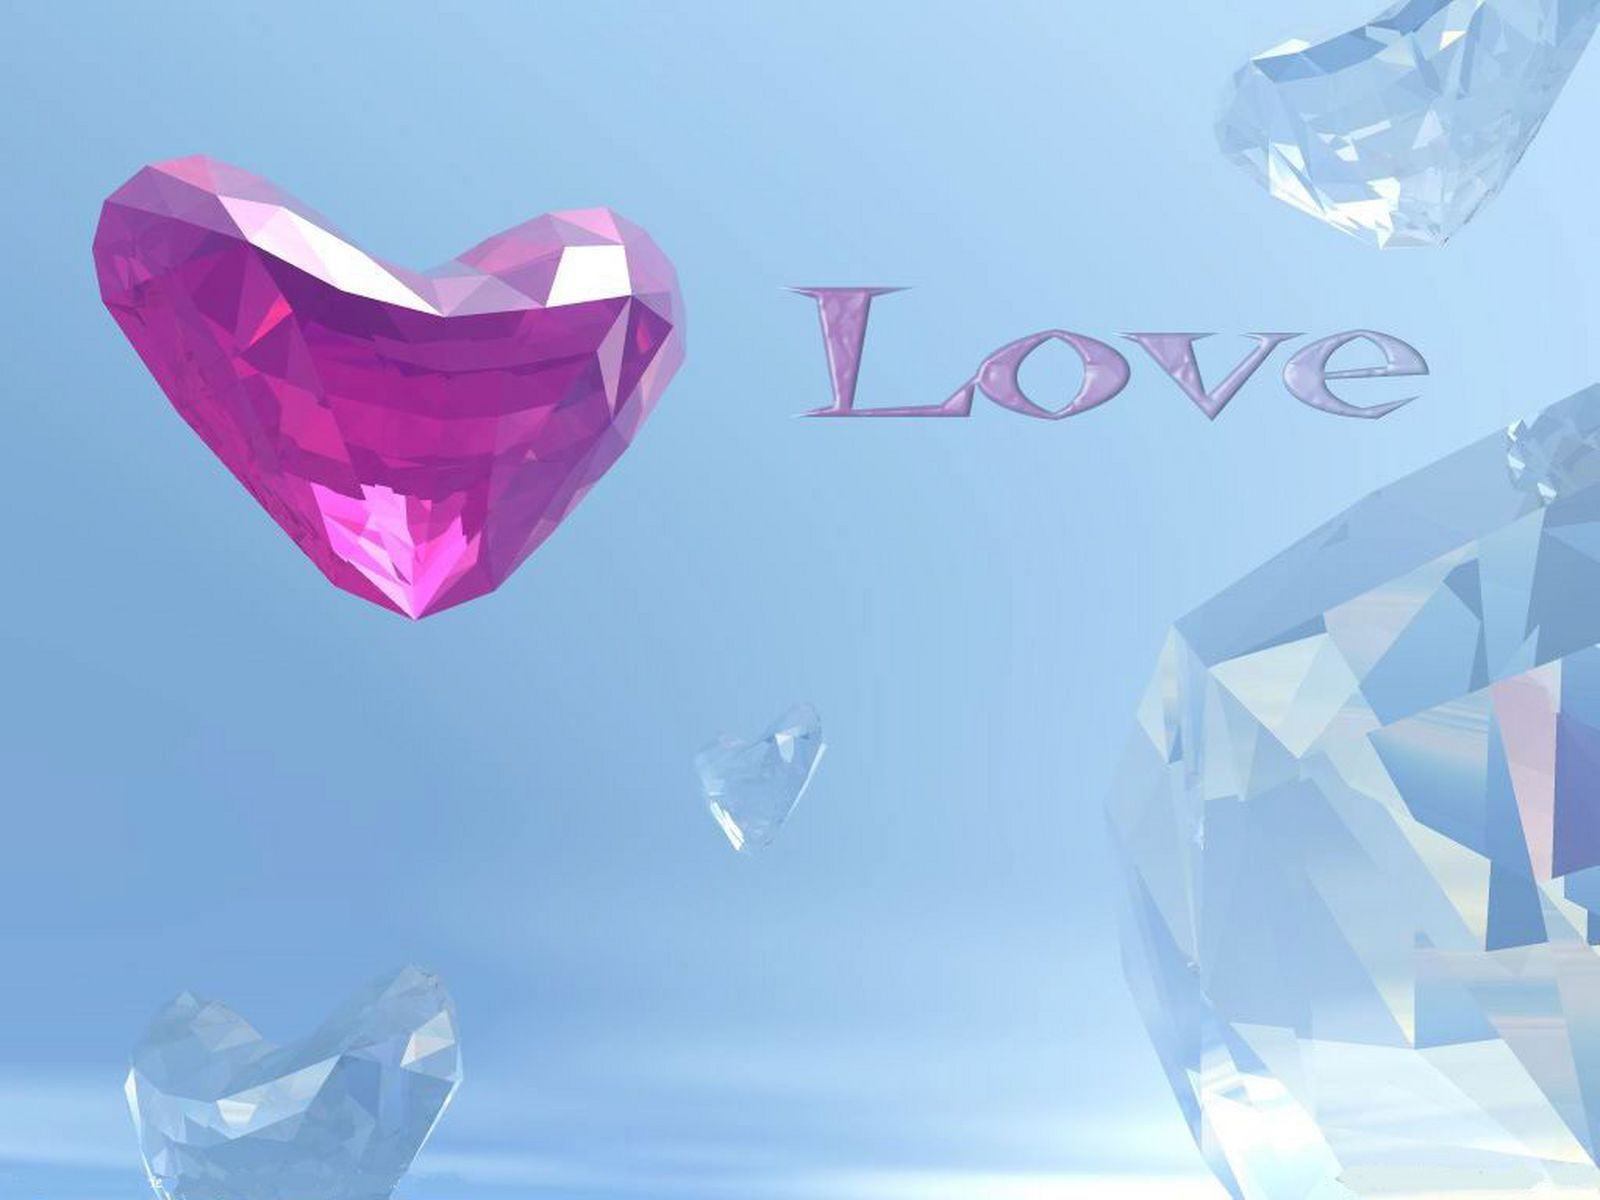 Love Vale Wallpaper : Love Wallpapers Hot Picures: Love Wallpaper Backgrounds